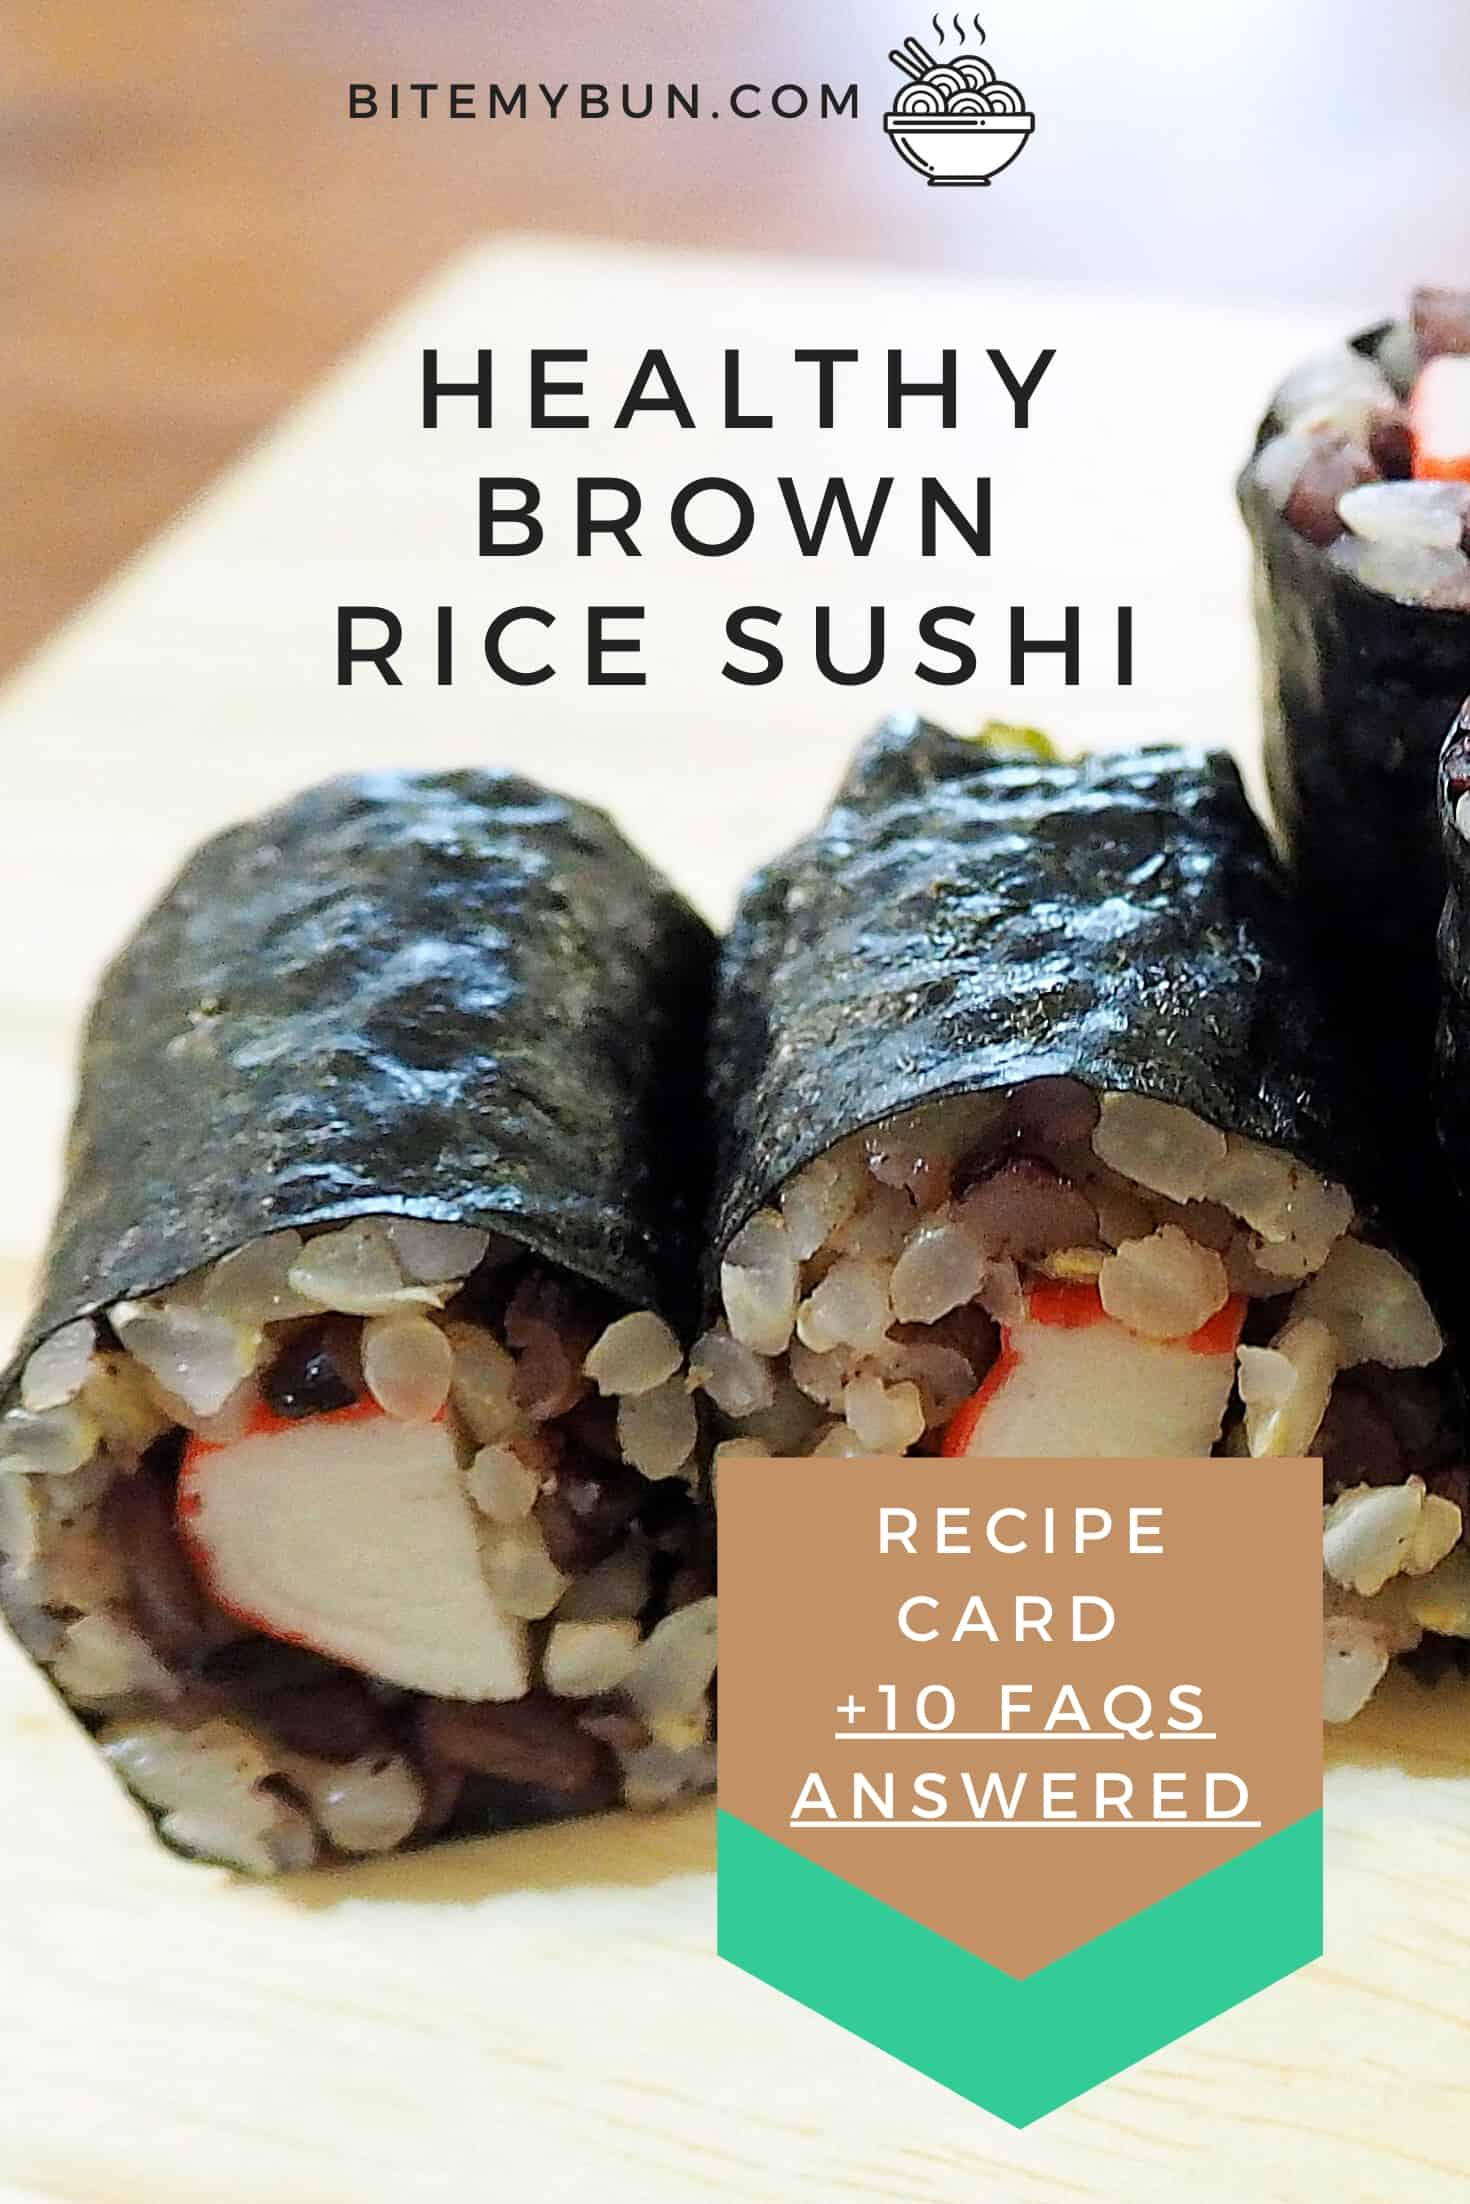 Healthy brown rice sushi recipe card